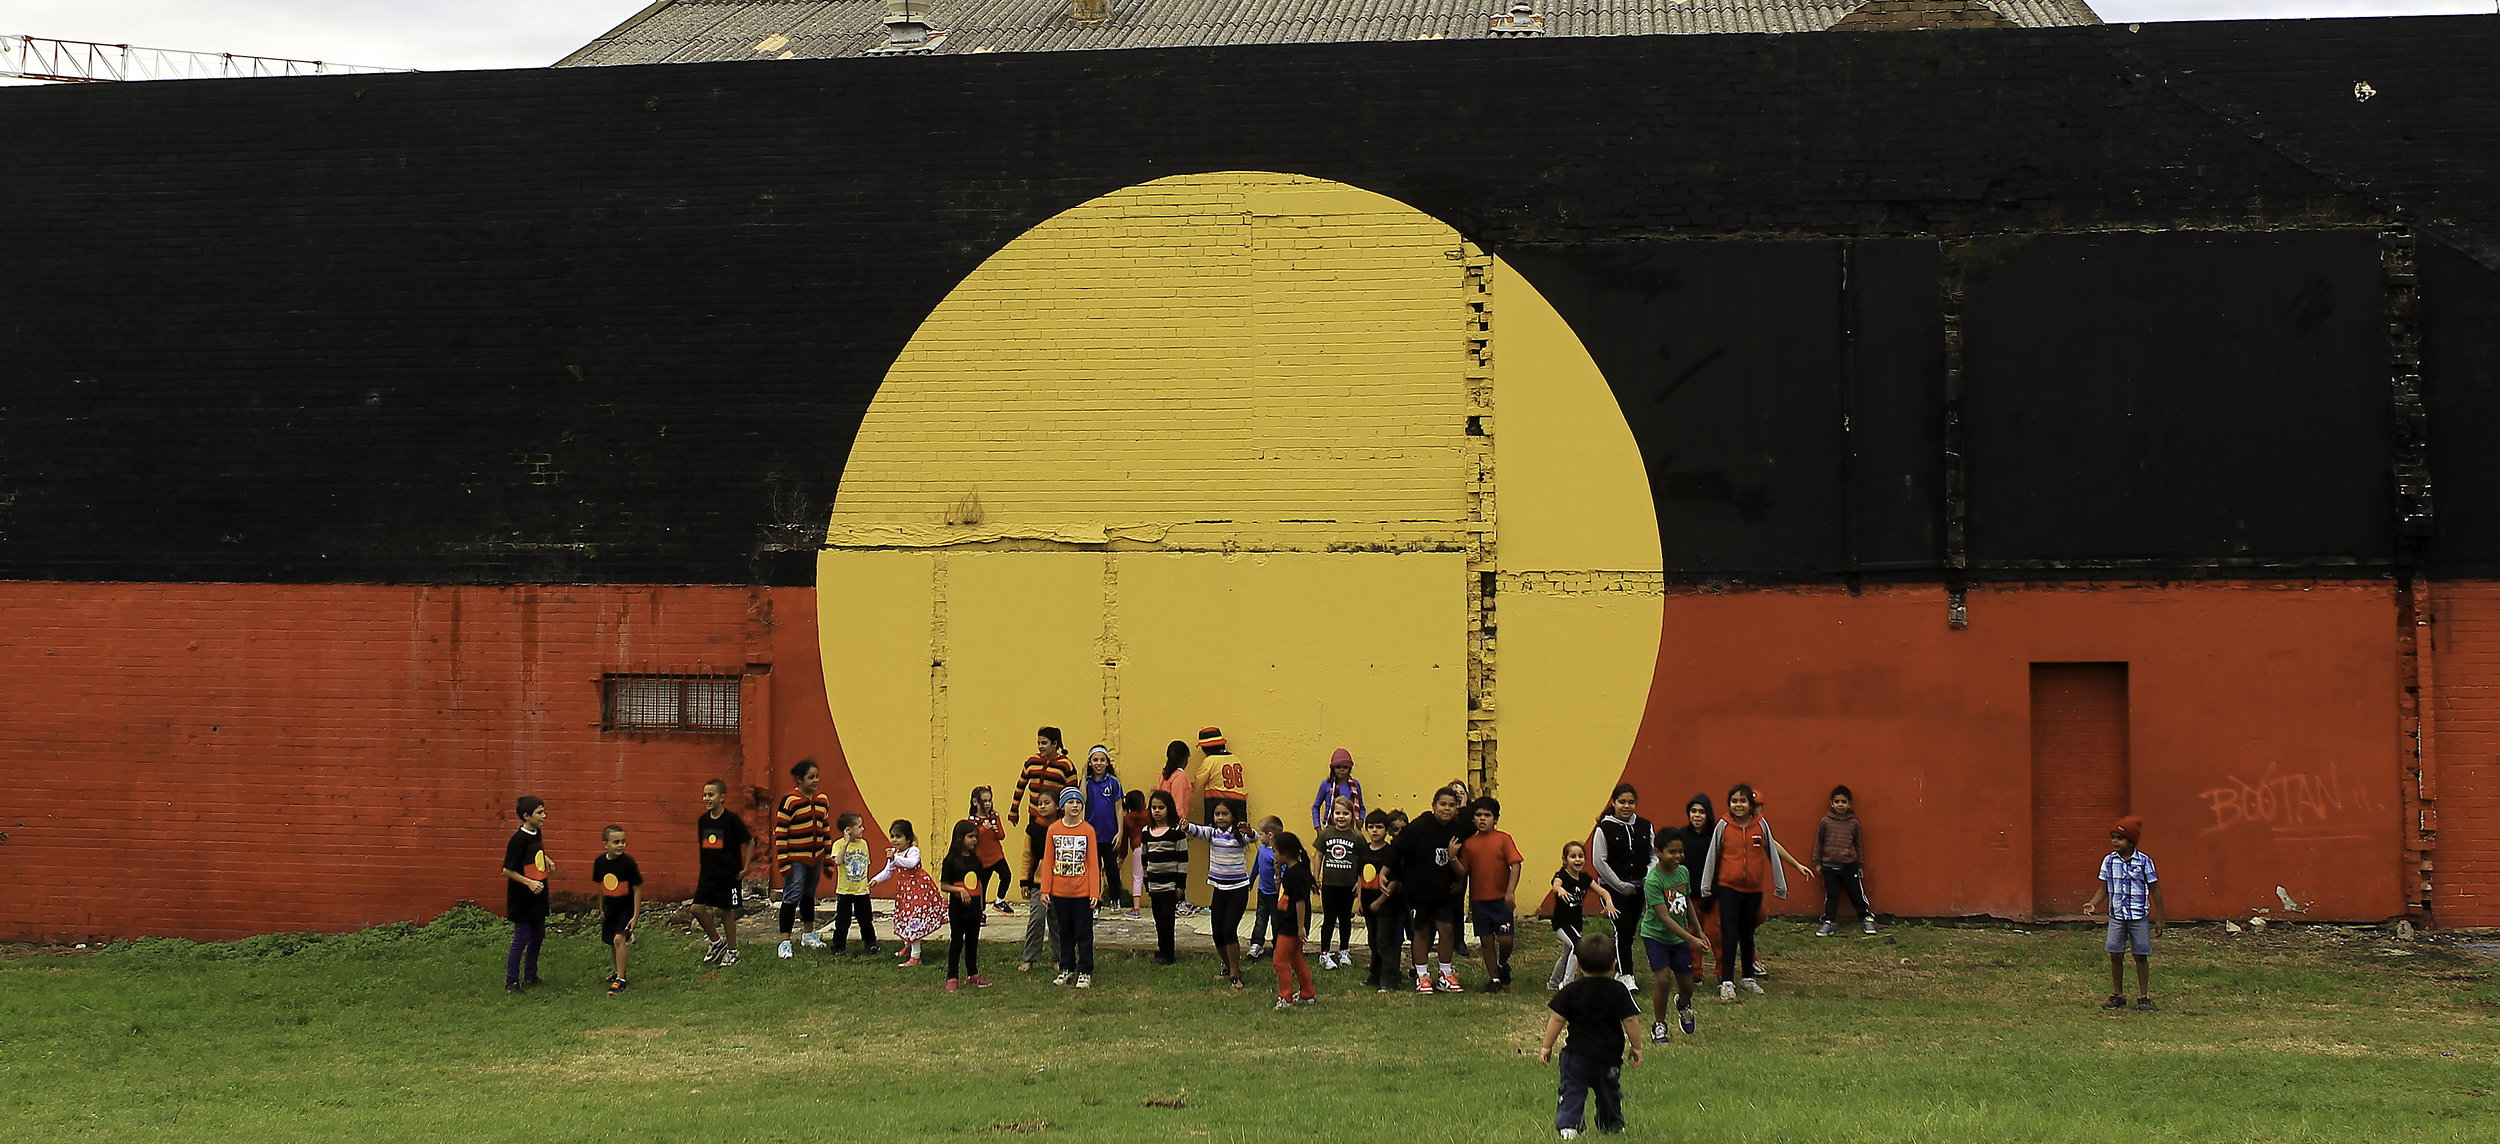 The Aboriginal flag, Red, Black and Yellow in Redfern. proud of culture